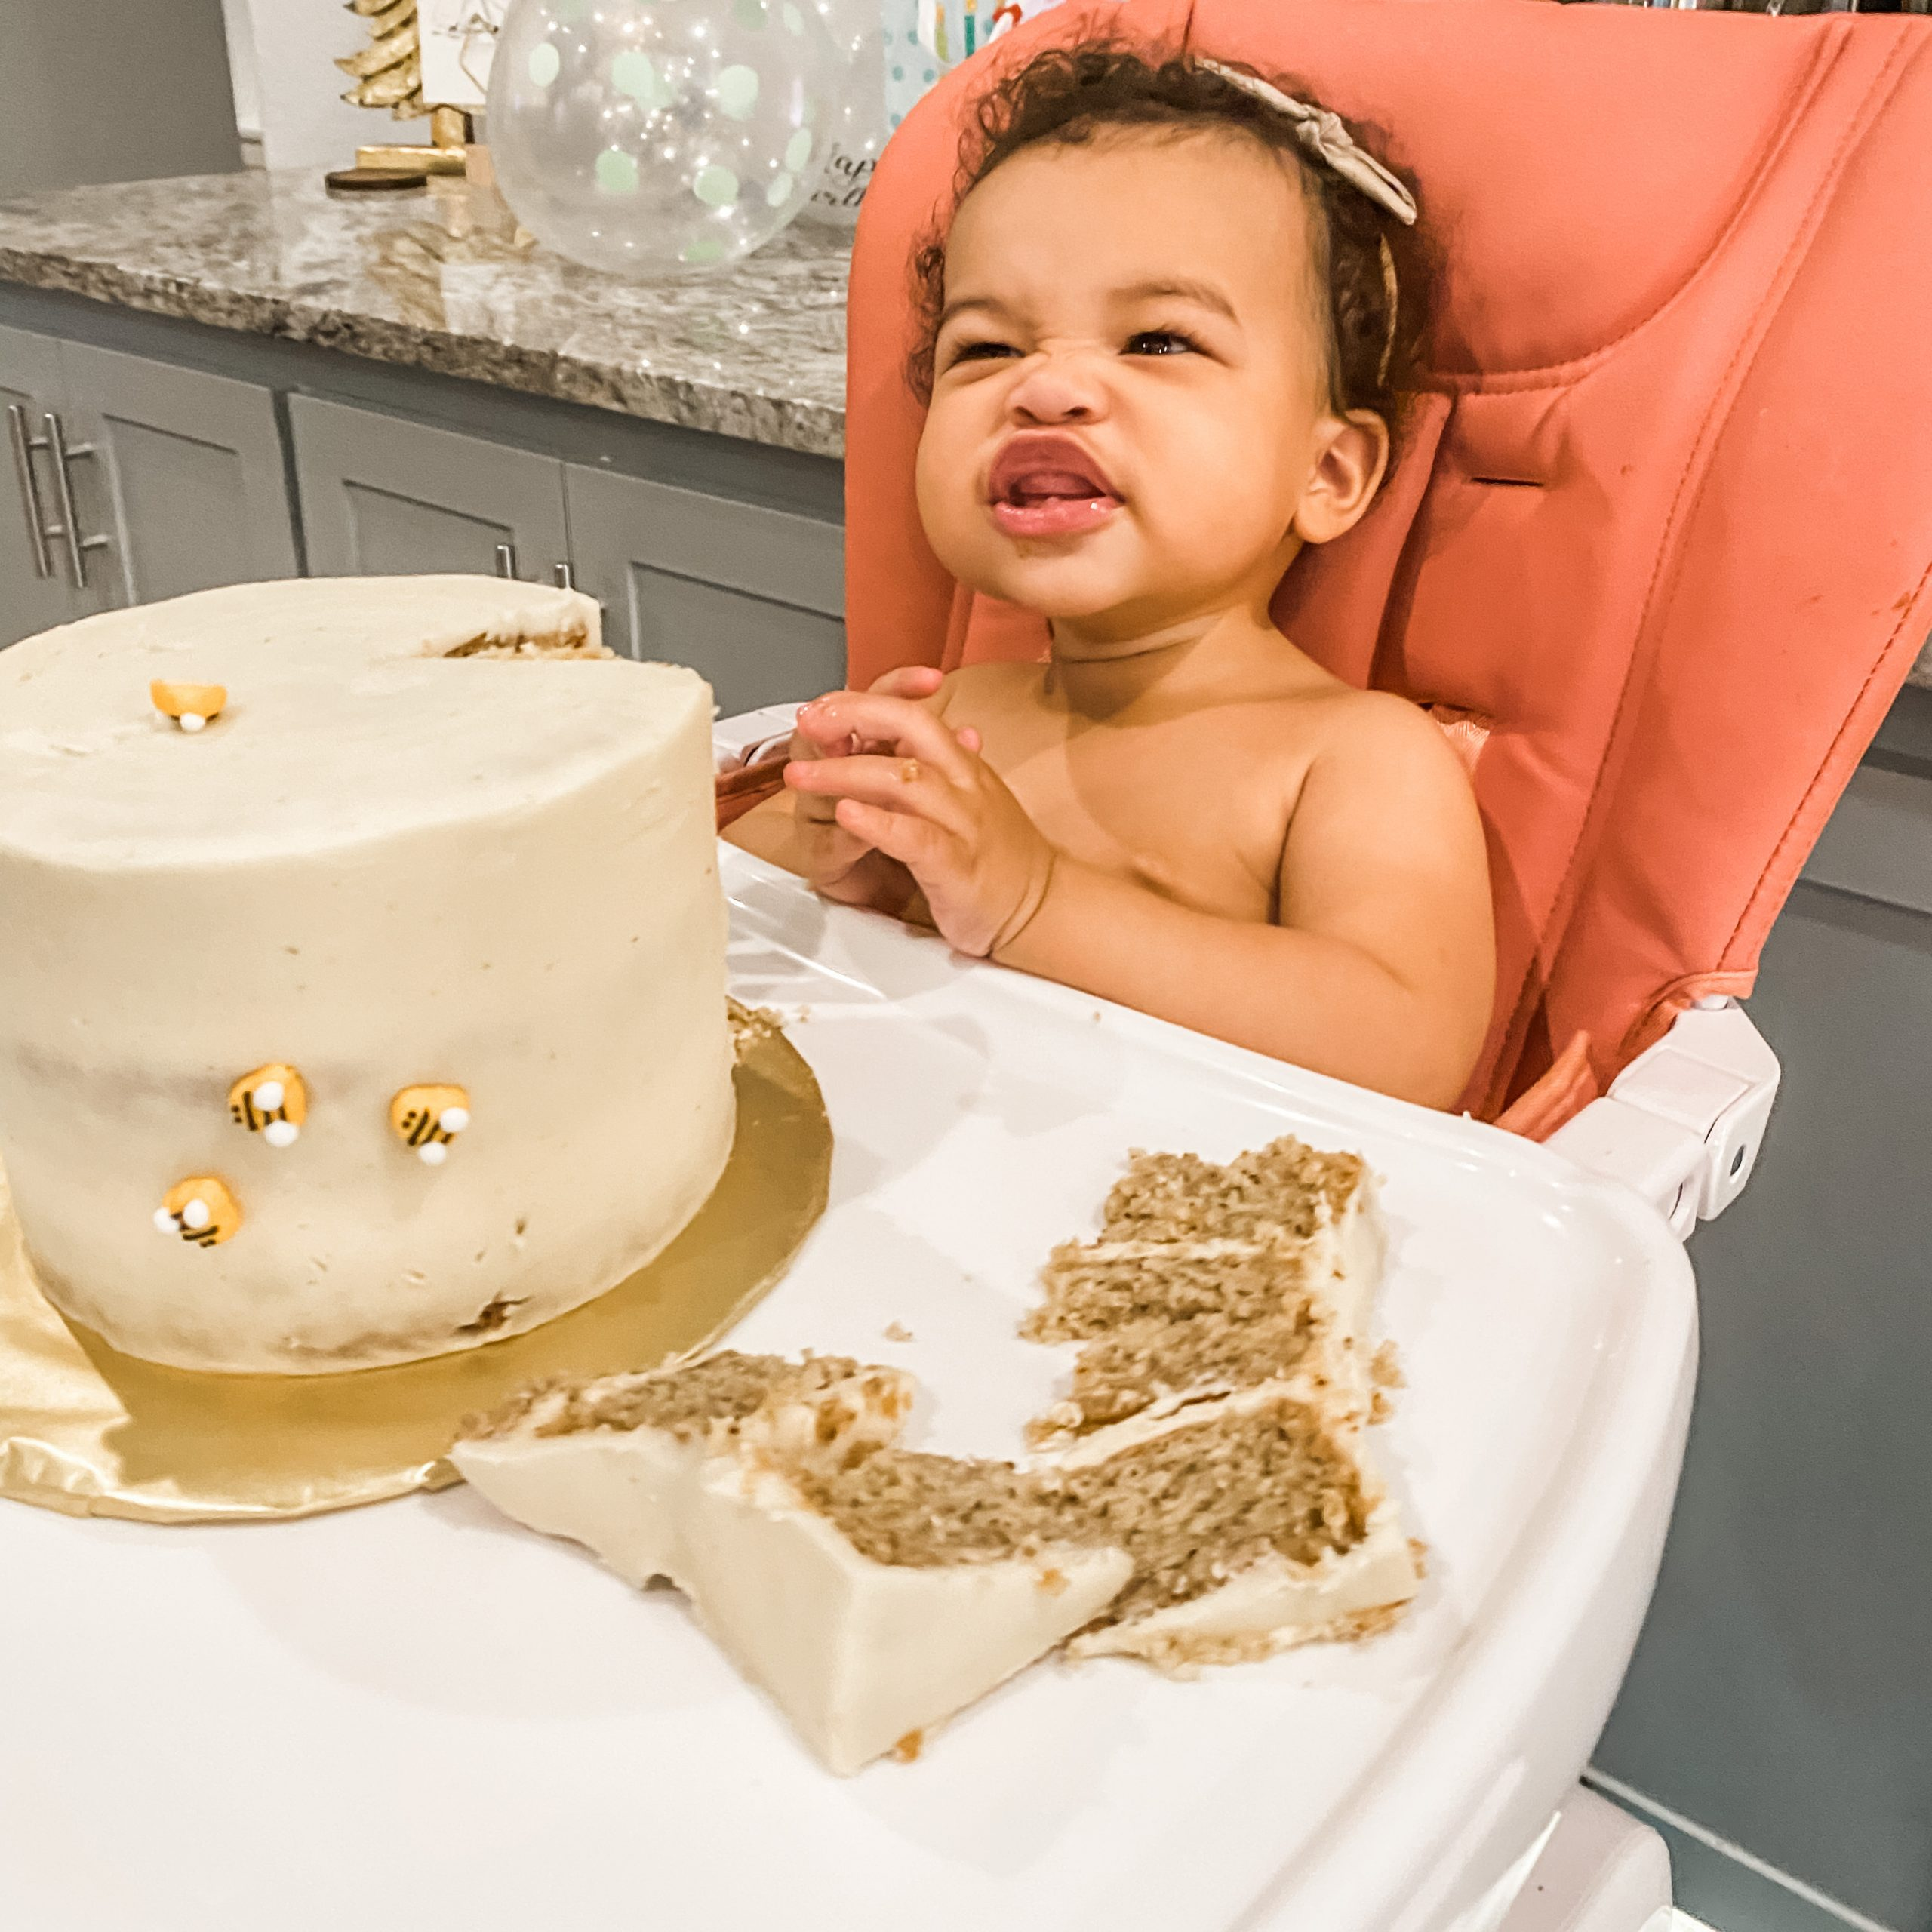 smiling baby with a smashed slice of cake